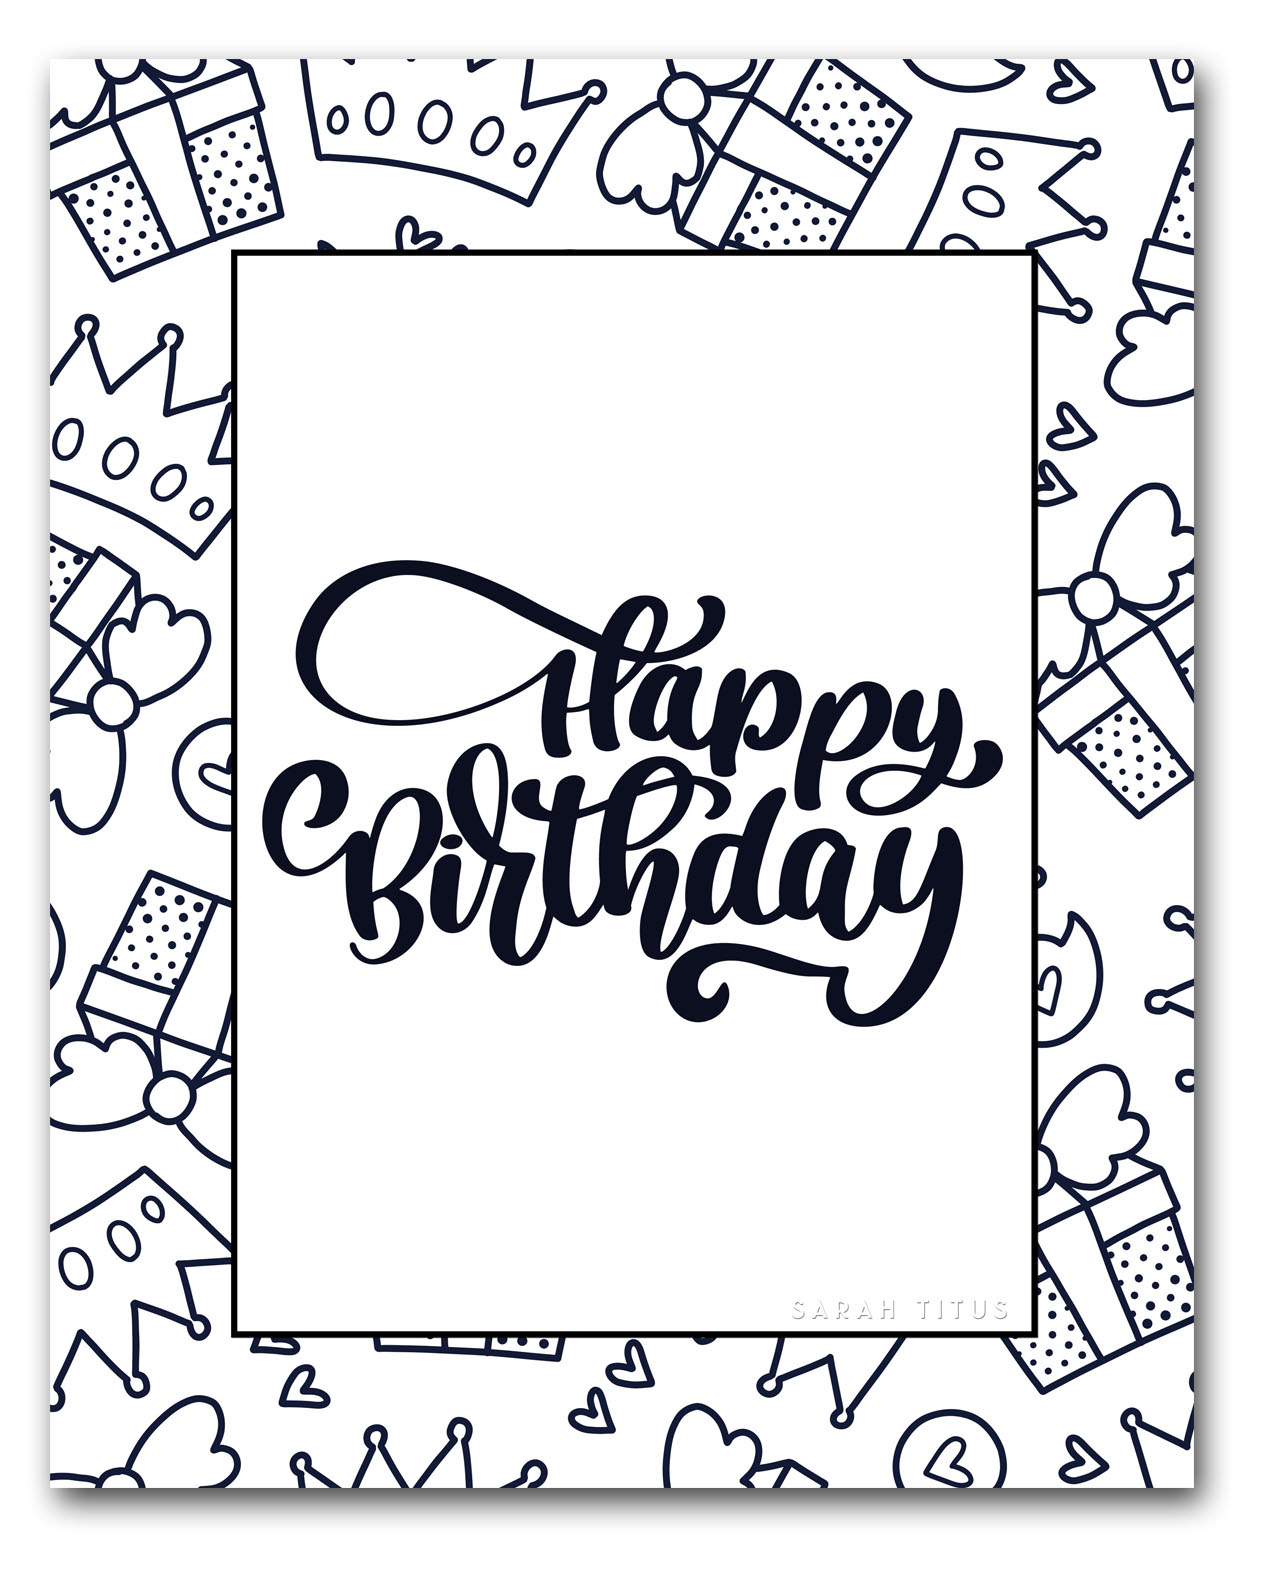 It's just an image of Birthday Coloring Pages Printable pertaining to star wars